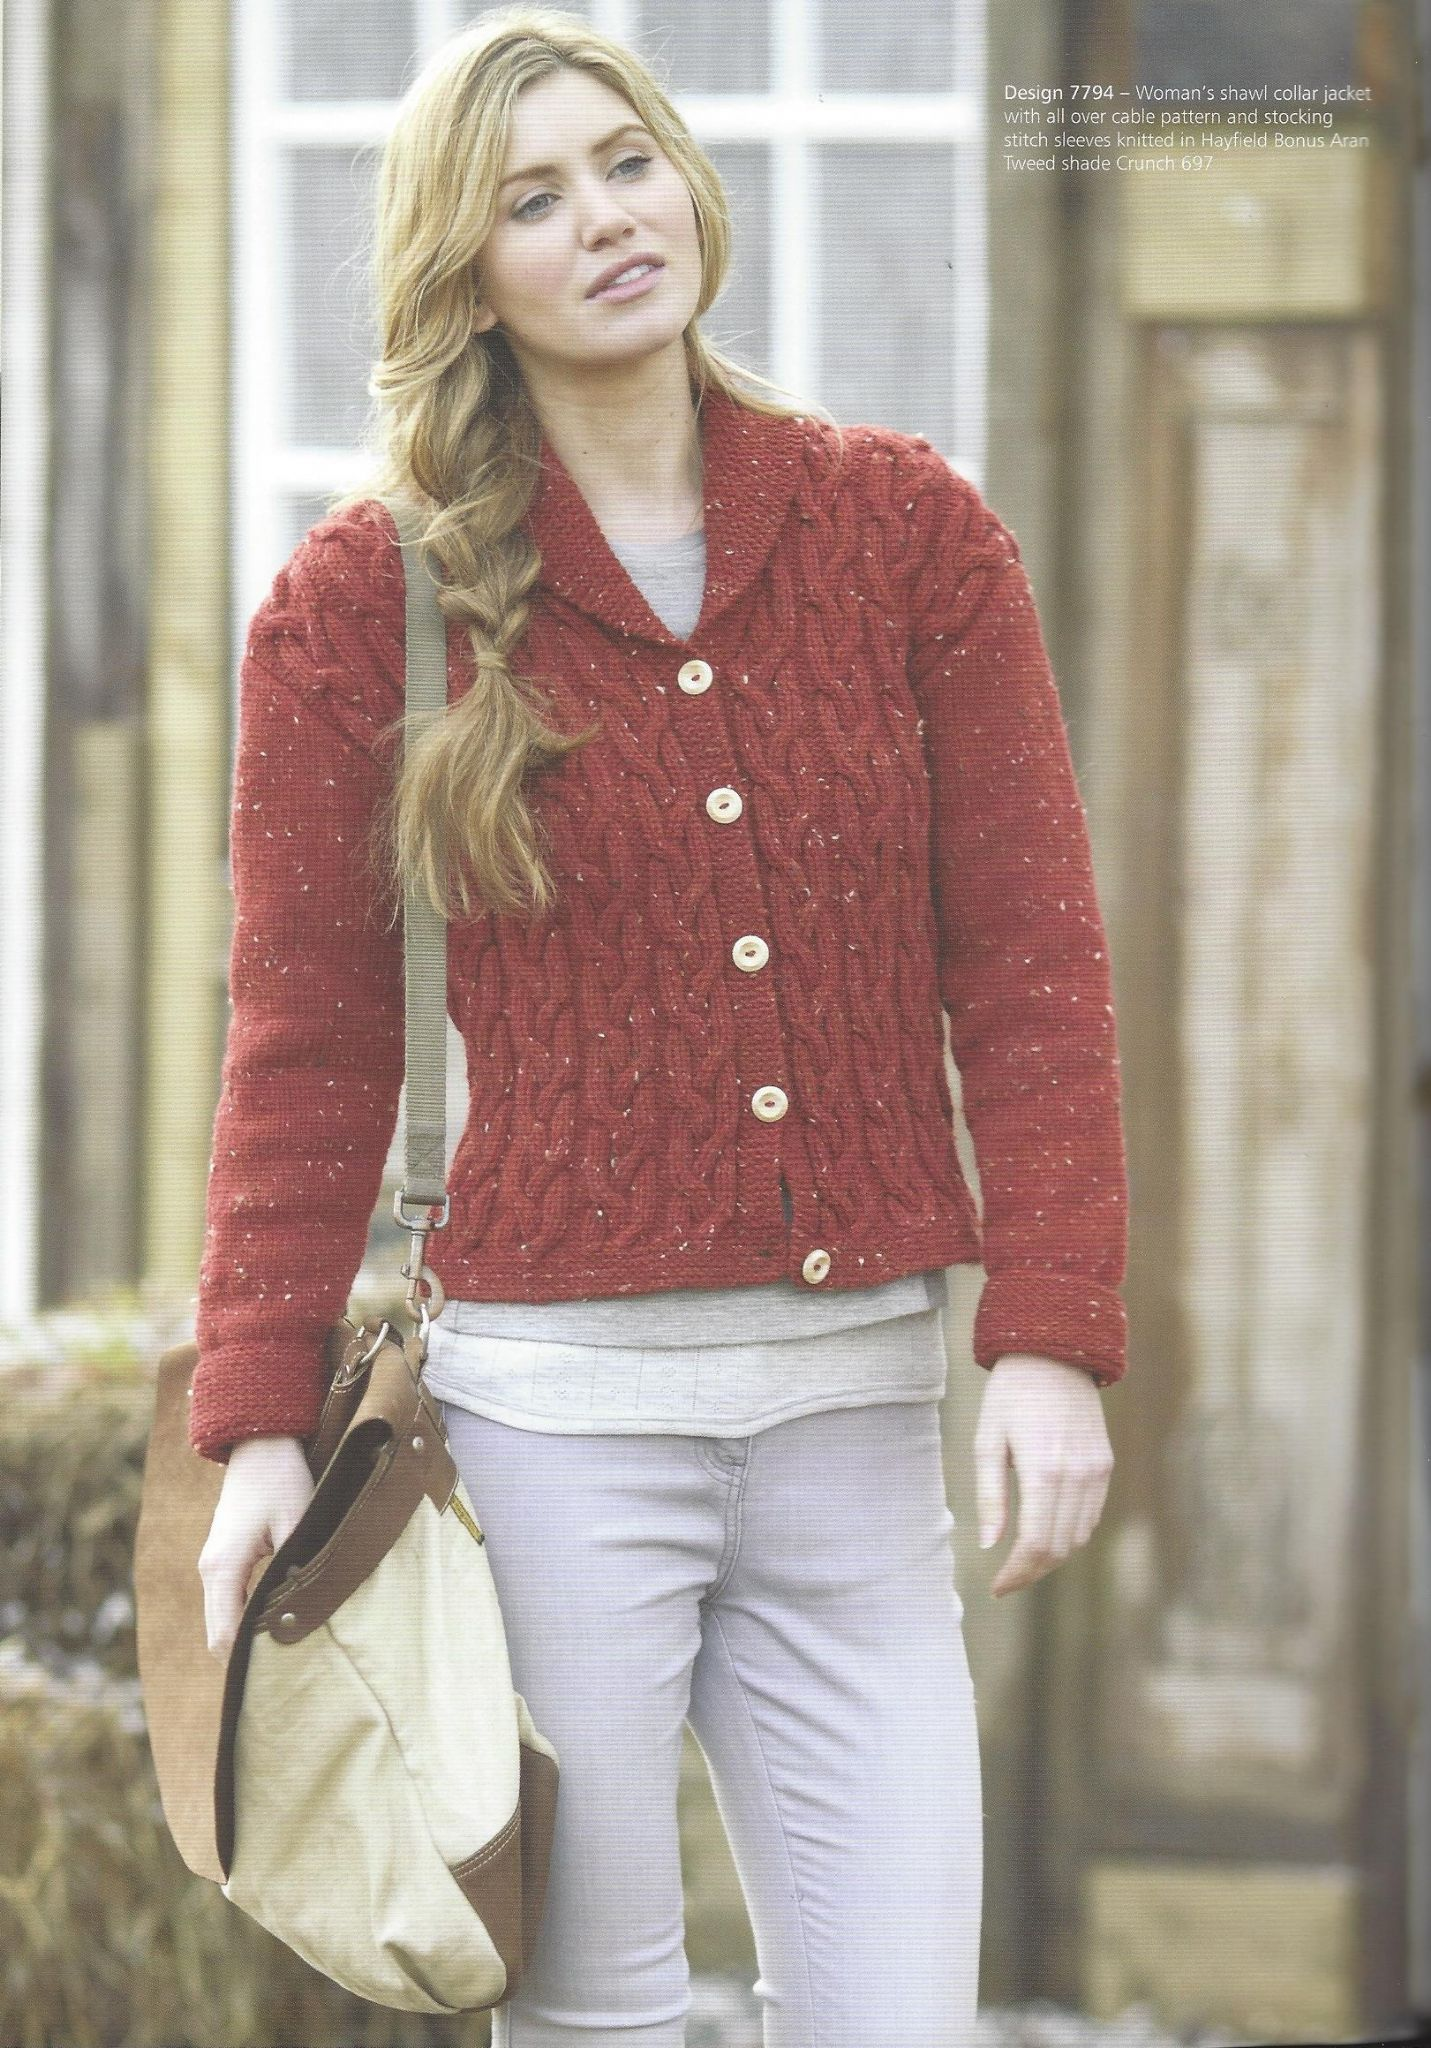 Hayfield Book 503 - 14 Favourite Aran Knits for Women in Hayfield ...